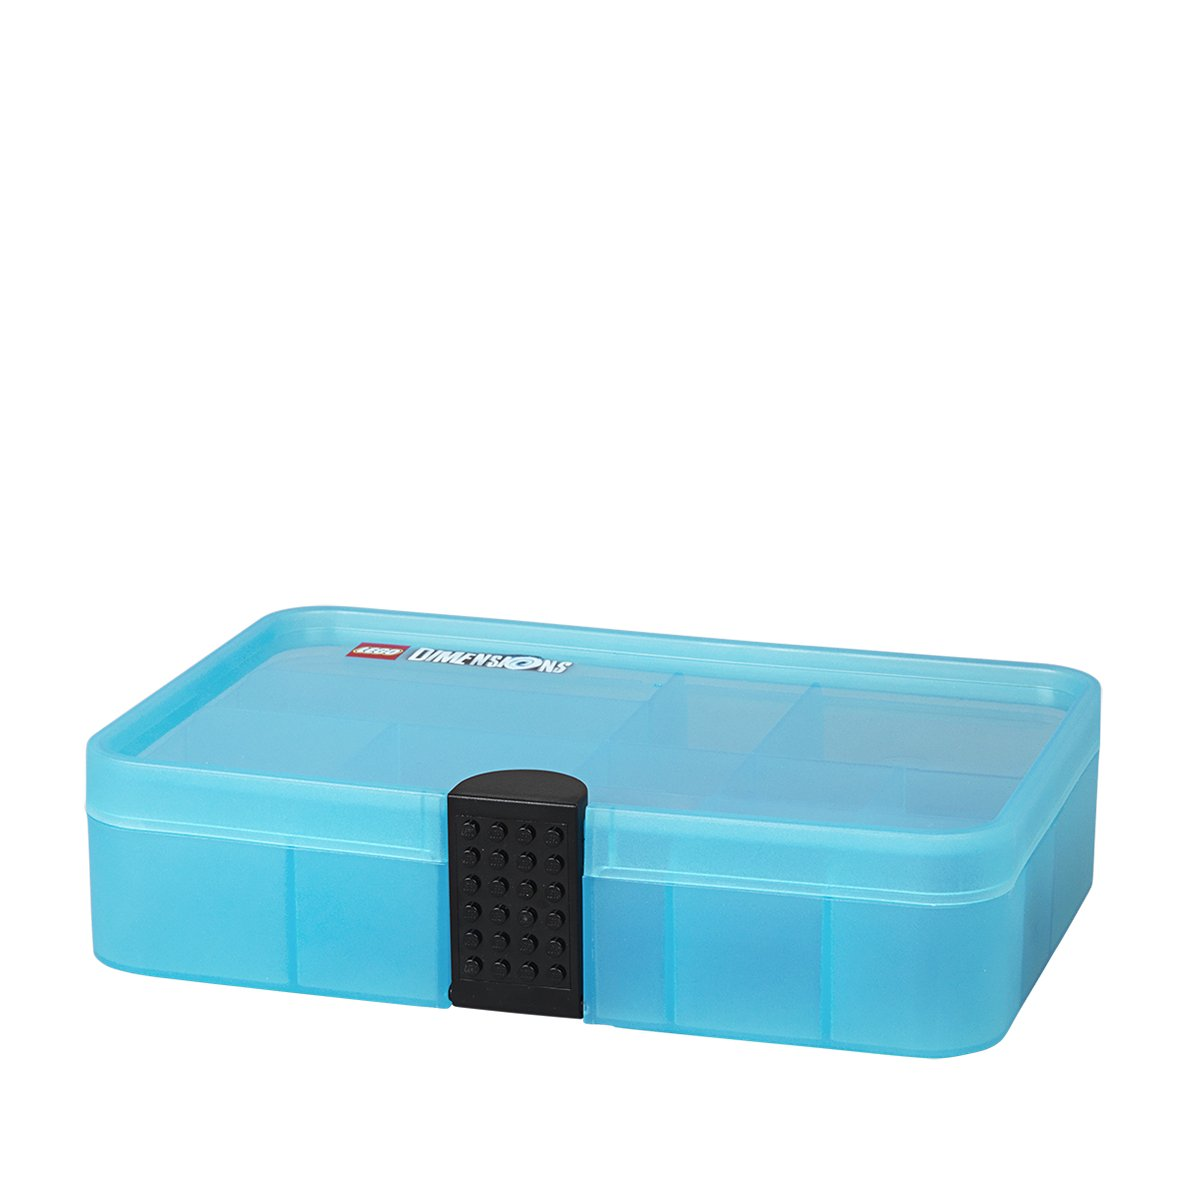 LEGO Dimensions Gaming Capsule/Sorting Box/Storage Case/Container with Compartments, Transparent Blue Room Copenhagen L4080BL